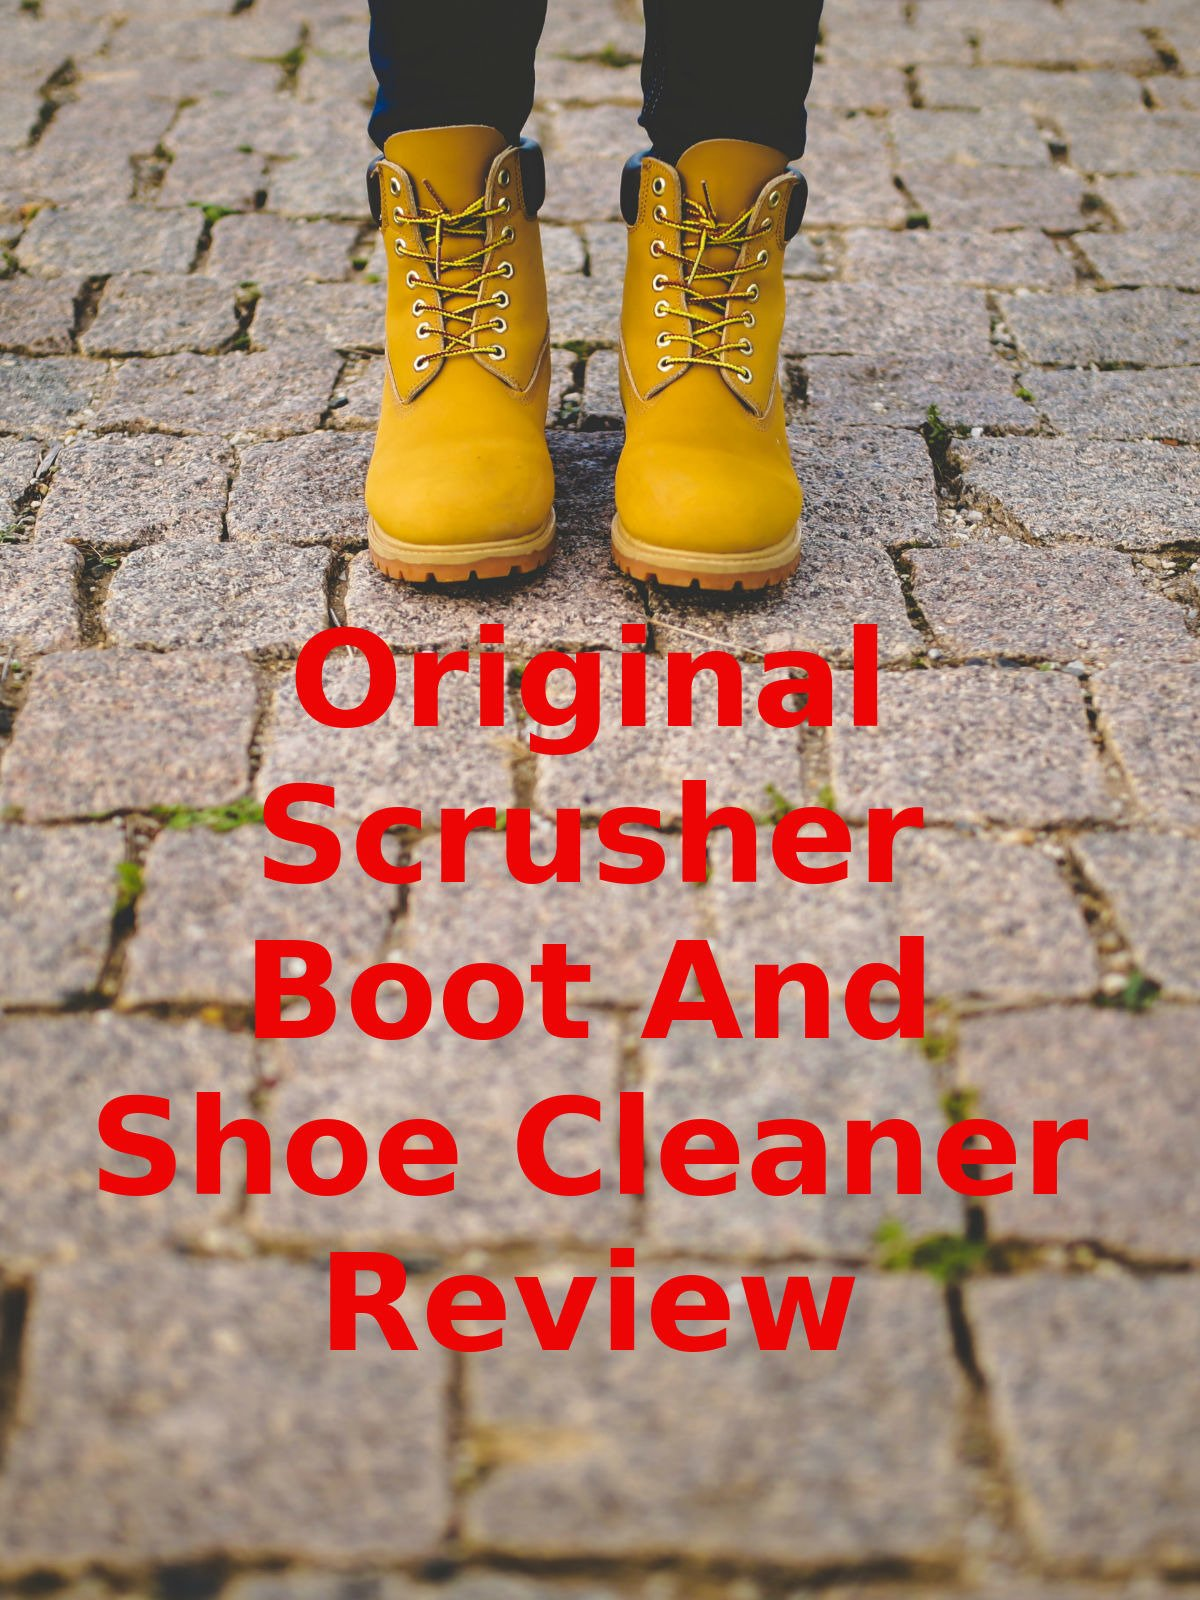 Review: Original Scrusher Boot And Shoe Cleaner Review